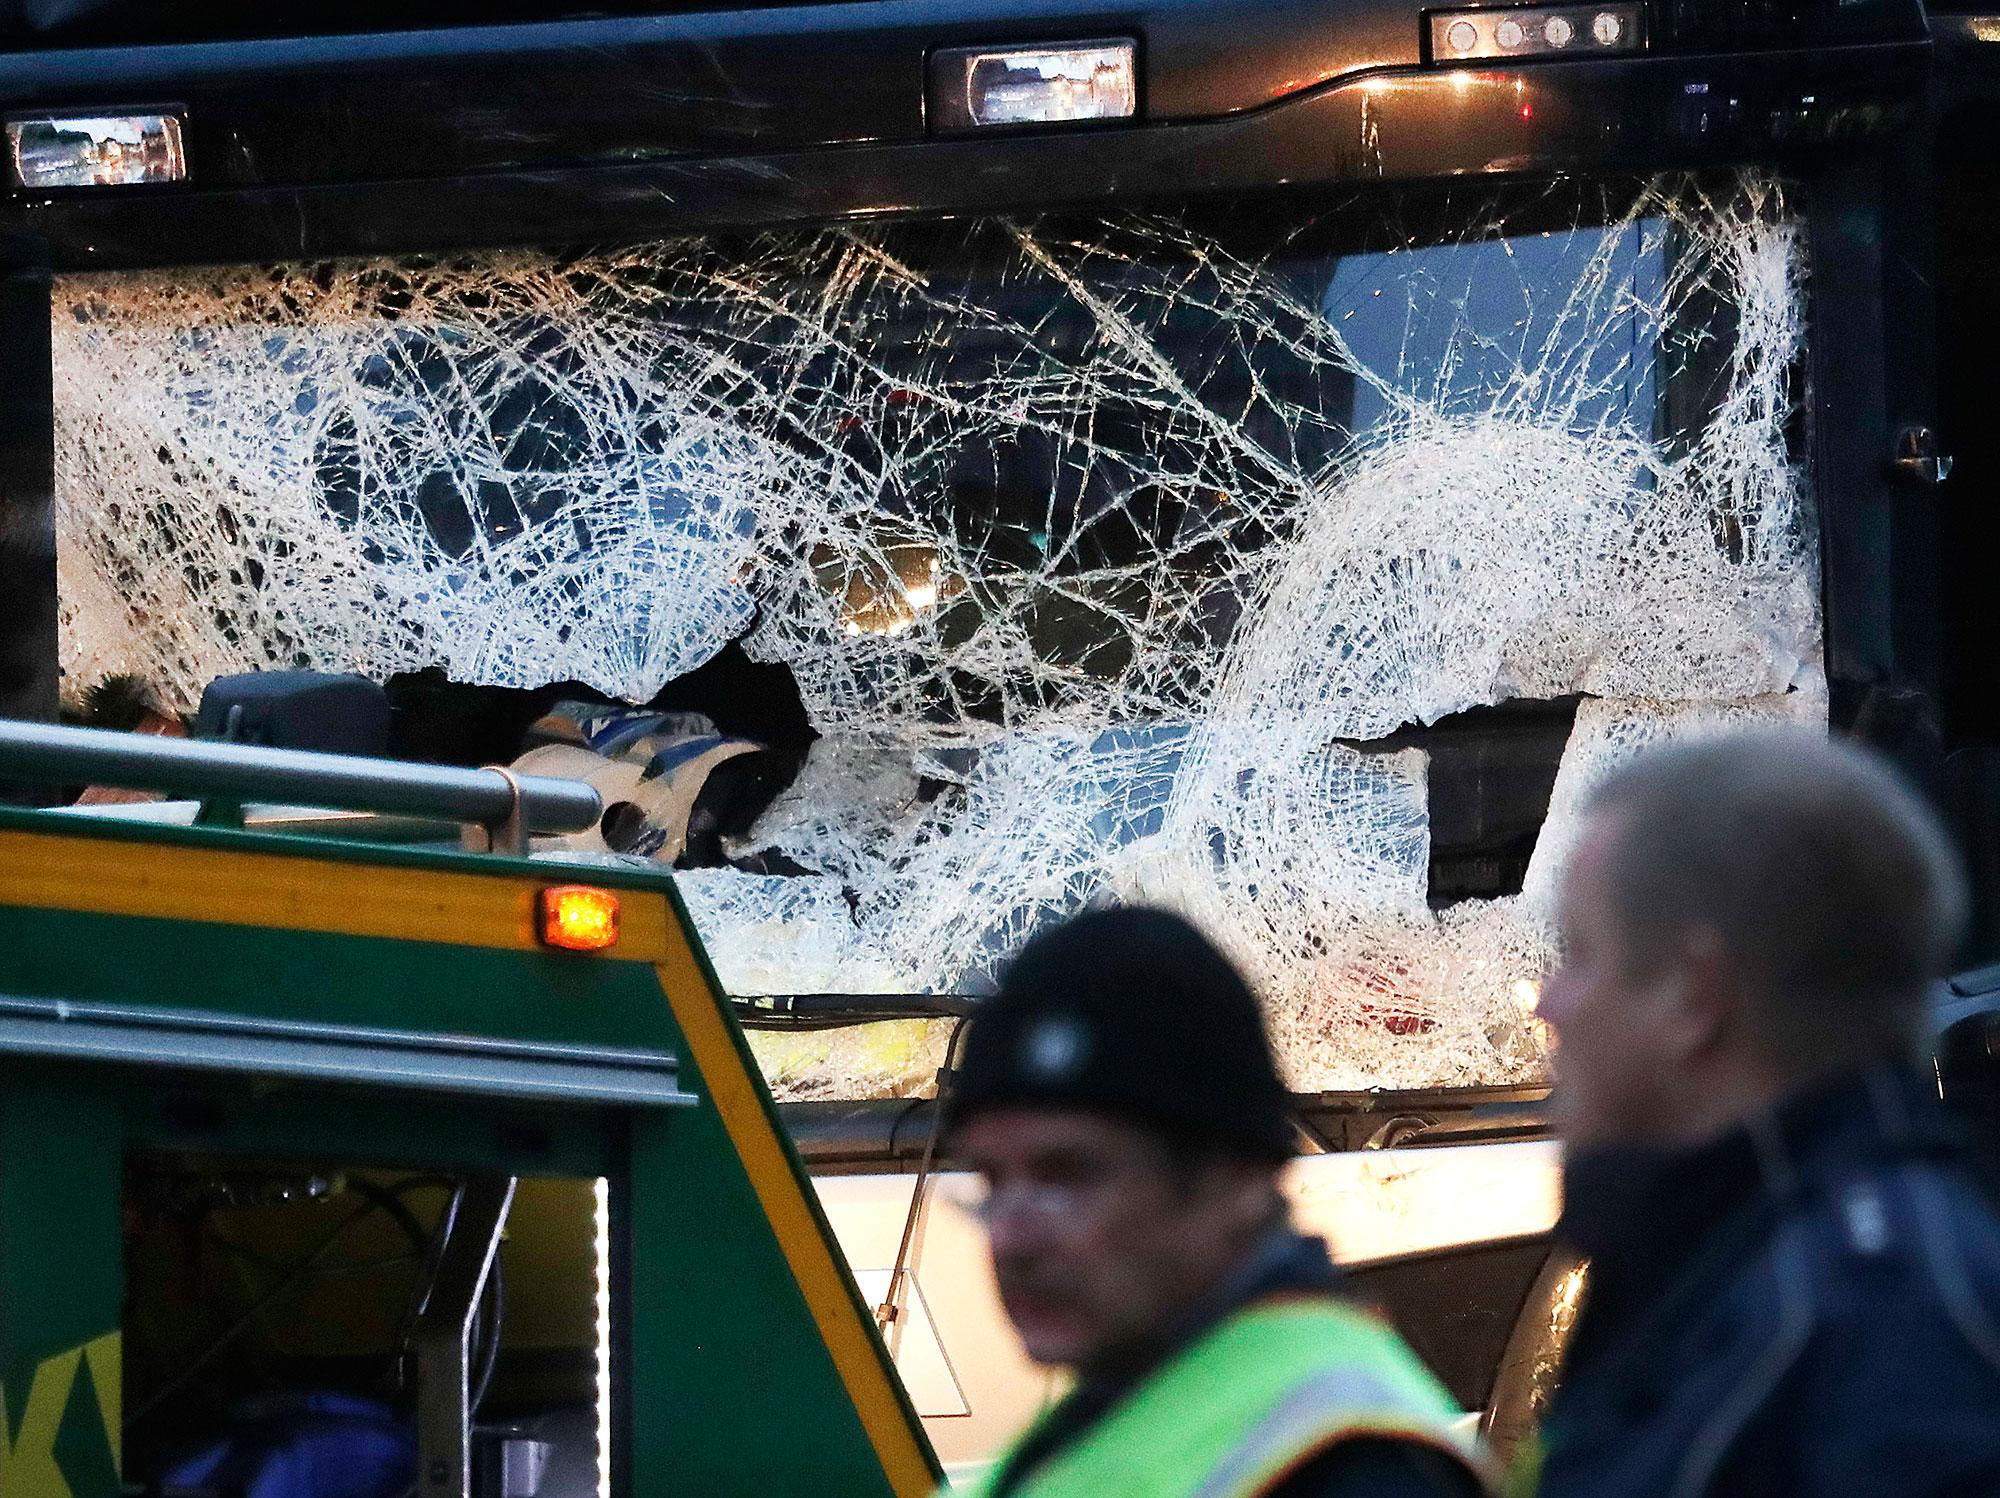 <p>The smashed window of the cabin of a truck which ran into a crowded Christmas market Monday evening killing several people Monday evening is seen in Berlin, Germany, Tuesday, Dec. 20, 2016. (AP Photo/Markus Schreiber) </p>